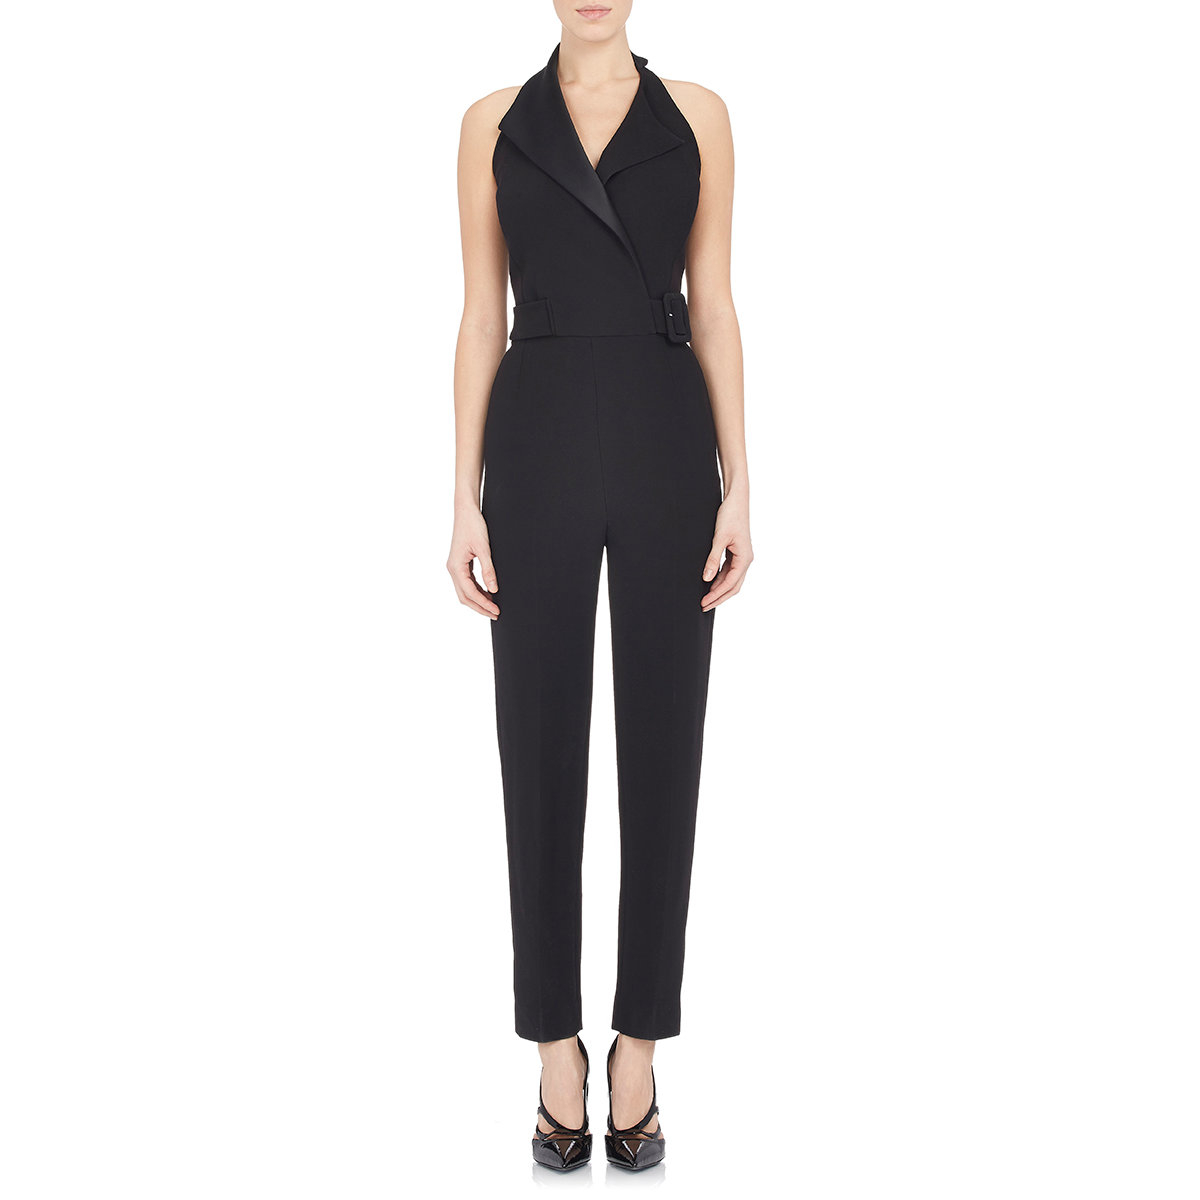 62d346d821f Lyst - Balenciaga Buckle Tailored Jumpsuit in Black